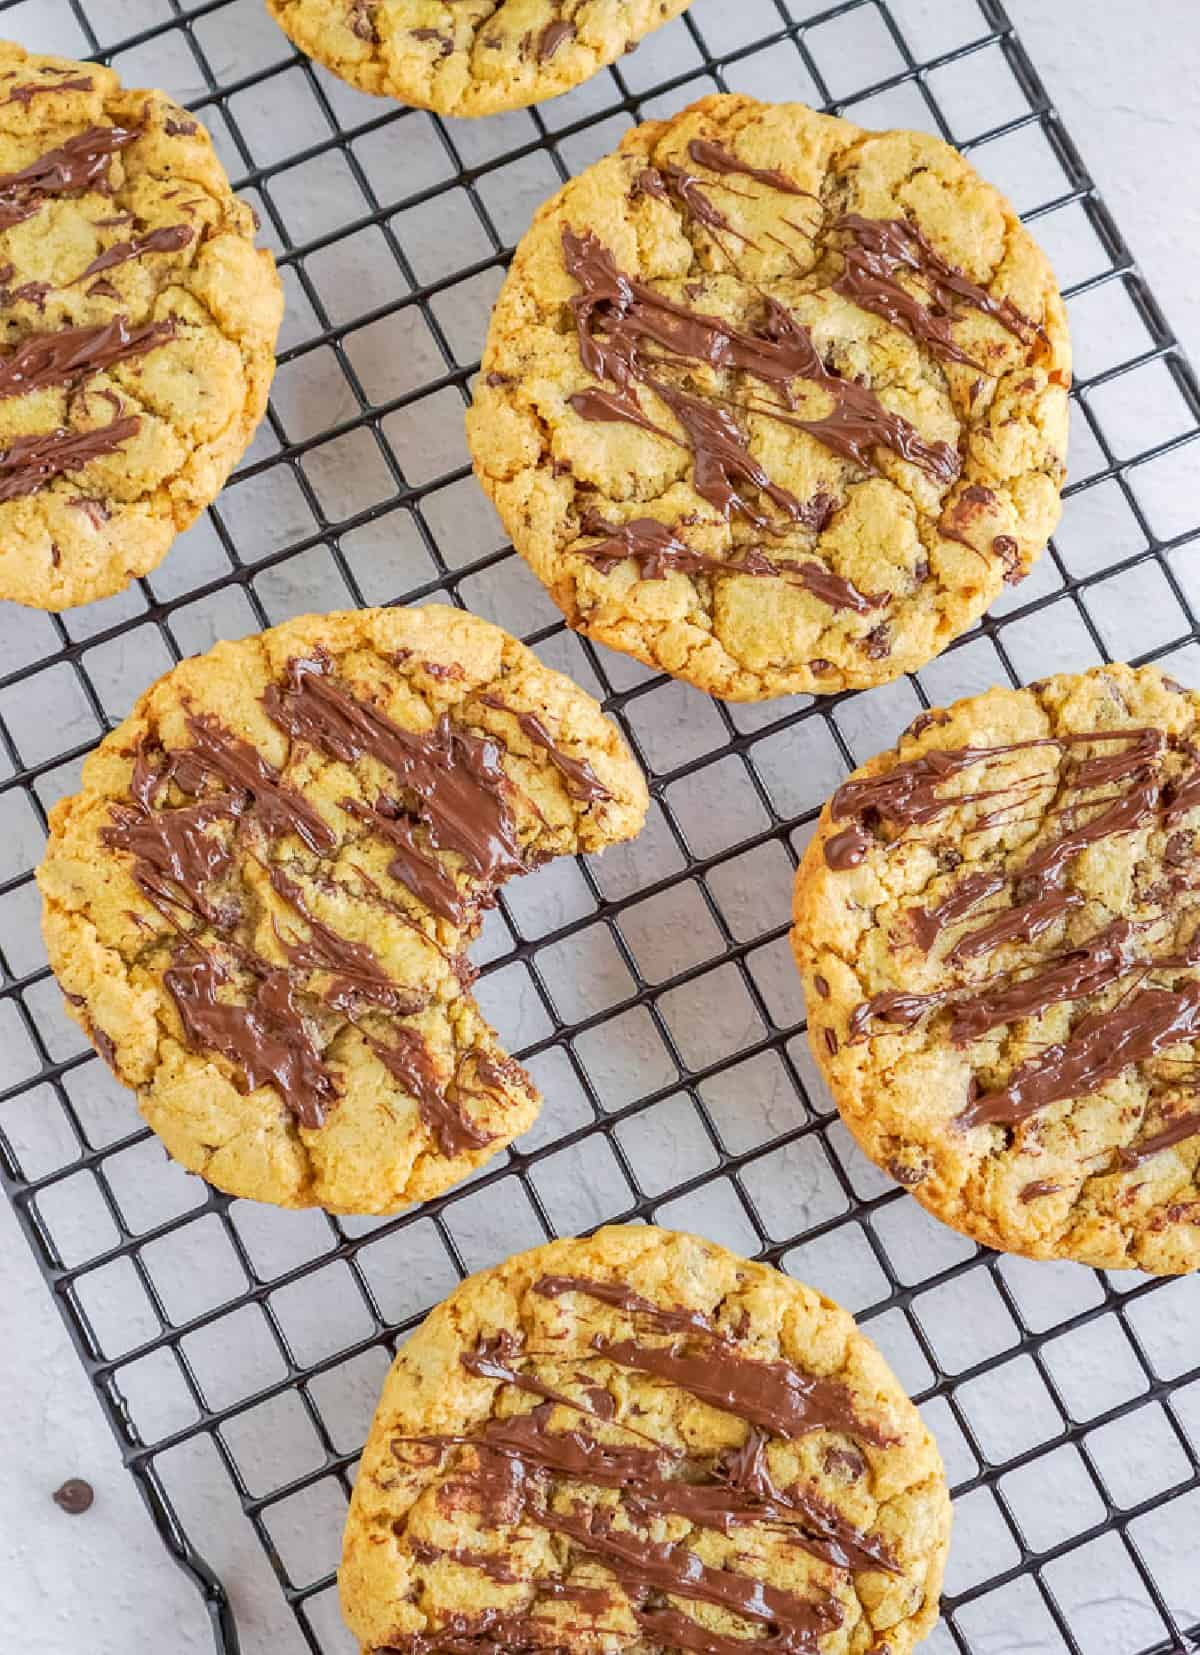 Pumpkin chocolate chip cookies on a cooling rack, one with a bite out of it.